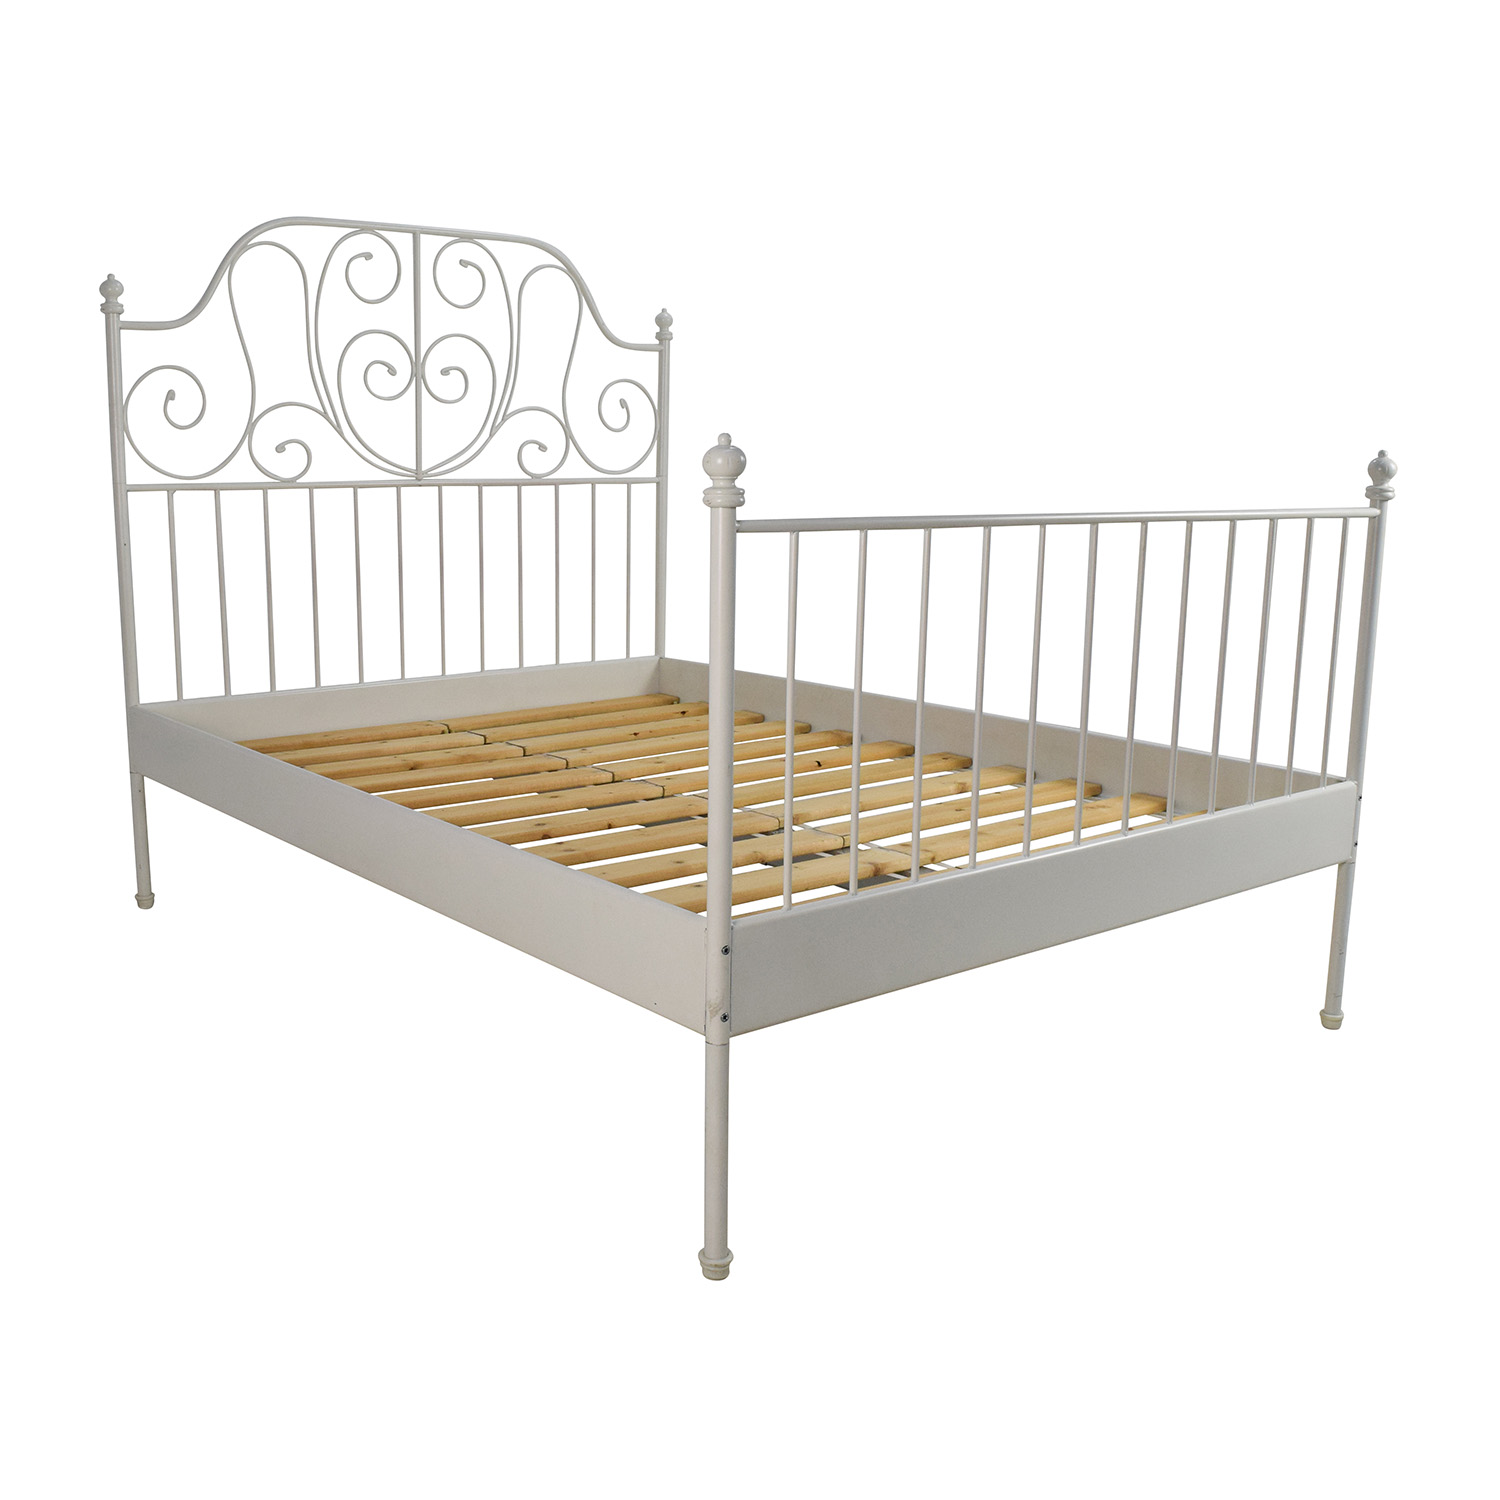 ... this bed frame might be just right for you. In this review, we will go  over its positive and negative sides in hopes to help you decide whether to  make ...